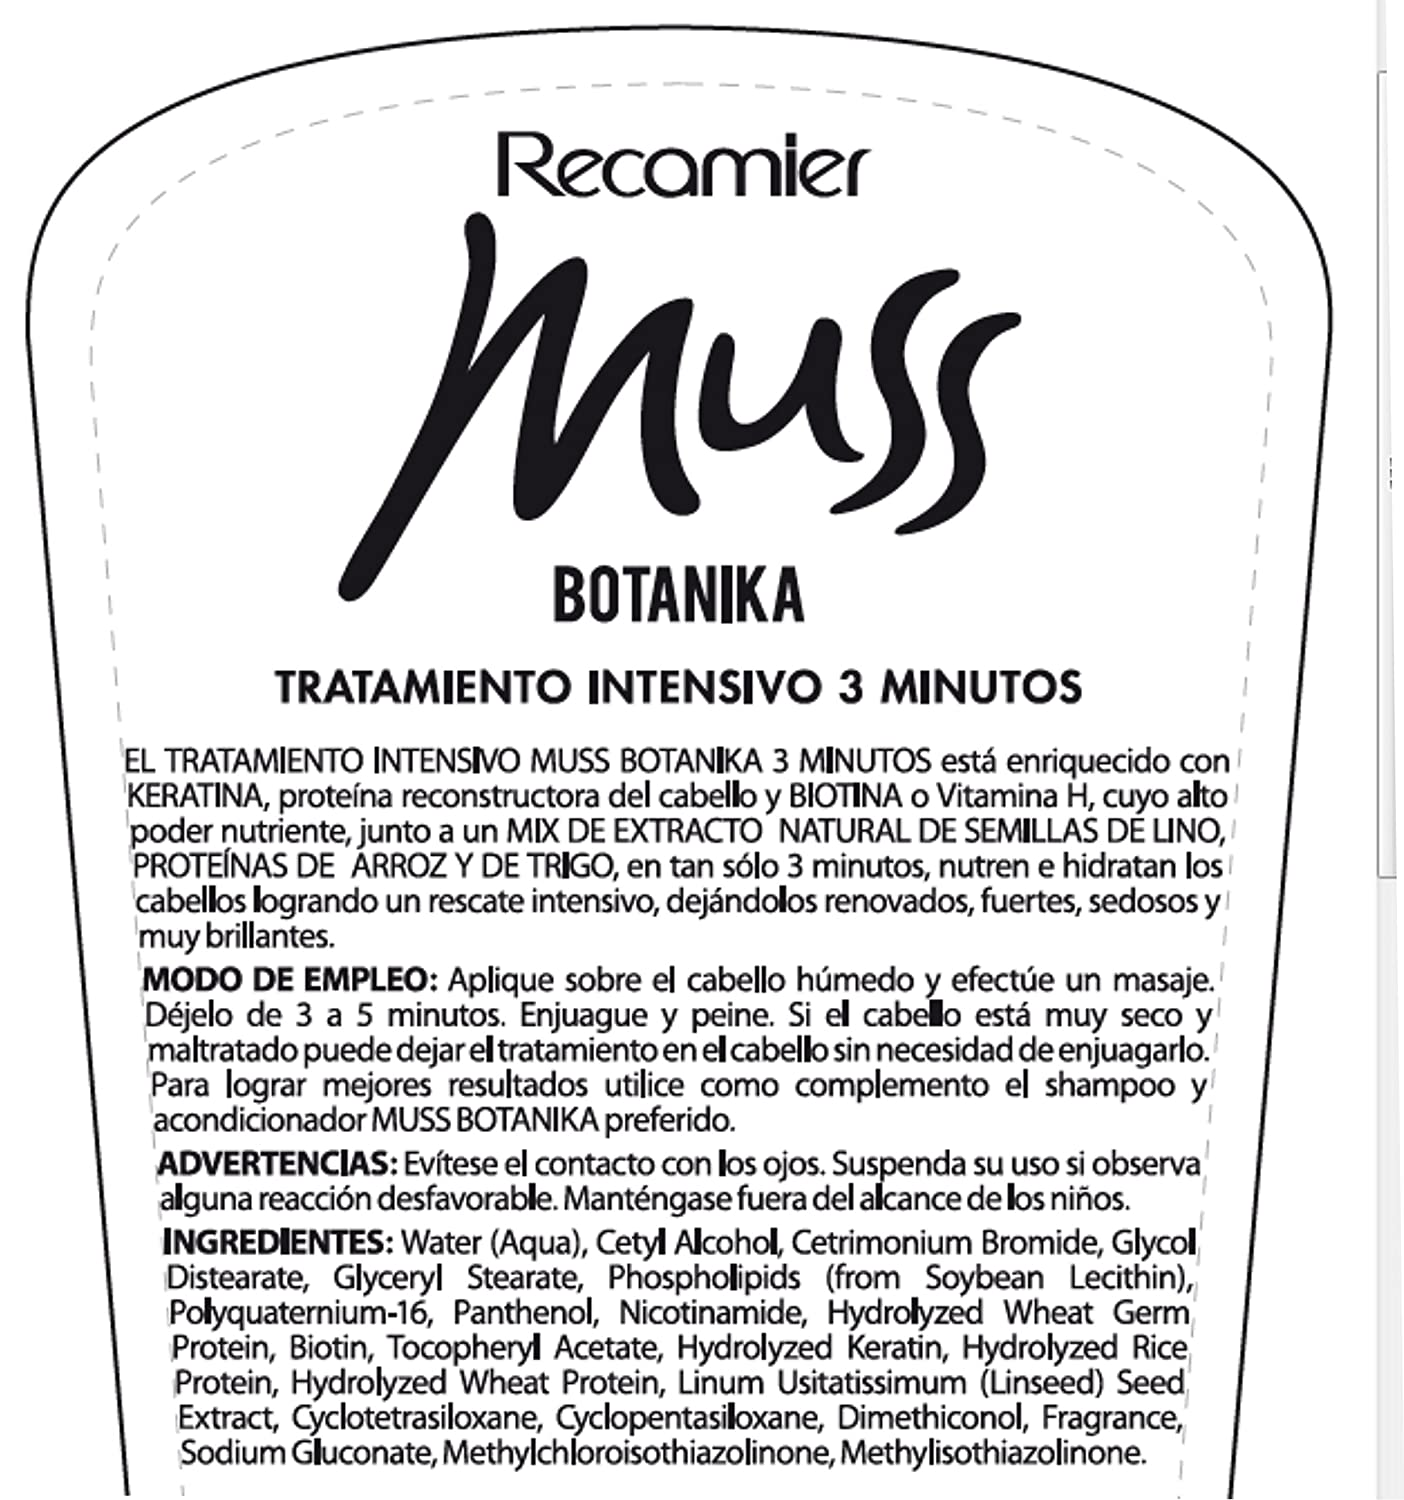 Amazon.com : MUSS BOTANIKA TRATAMIENTO INTENSIVO 3 MINUTOS WITH ...